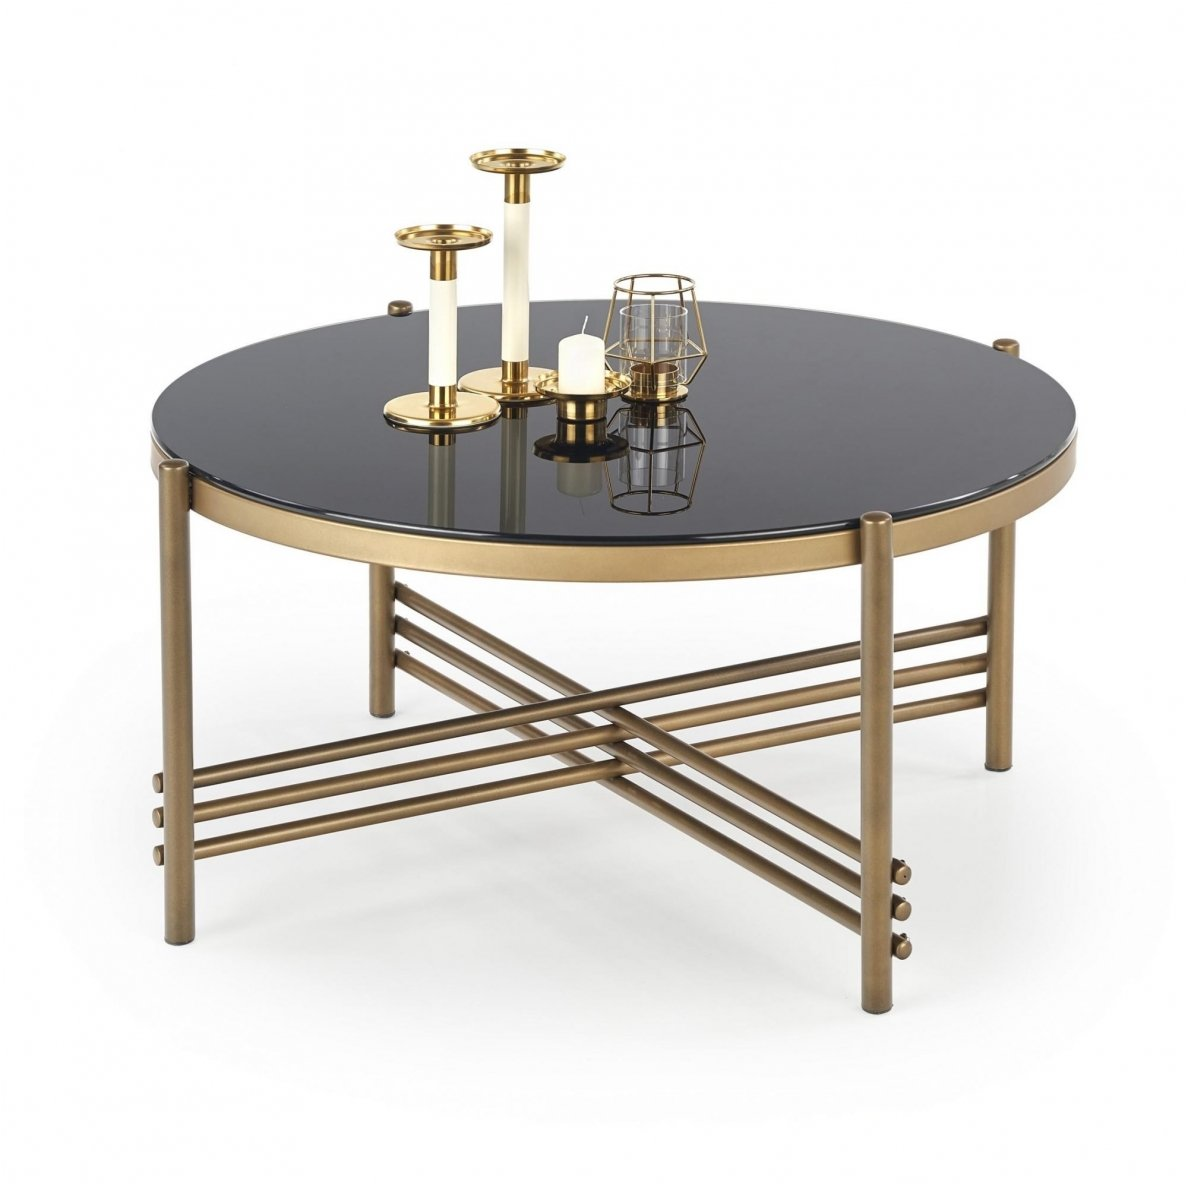 Glass Coffee Table Images.Ismena Round Glass Coffee Magazine Table